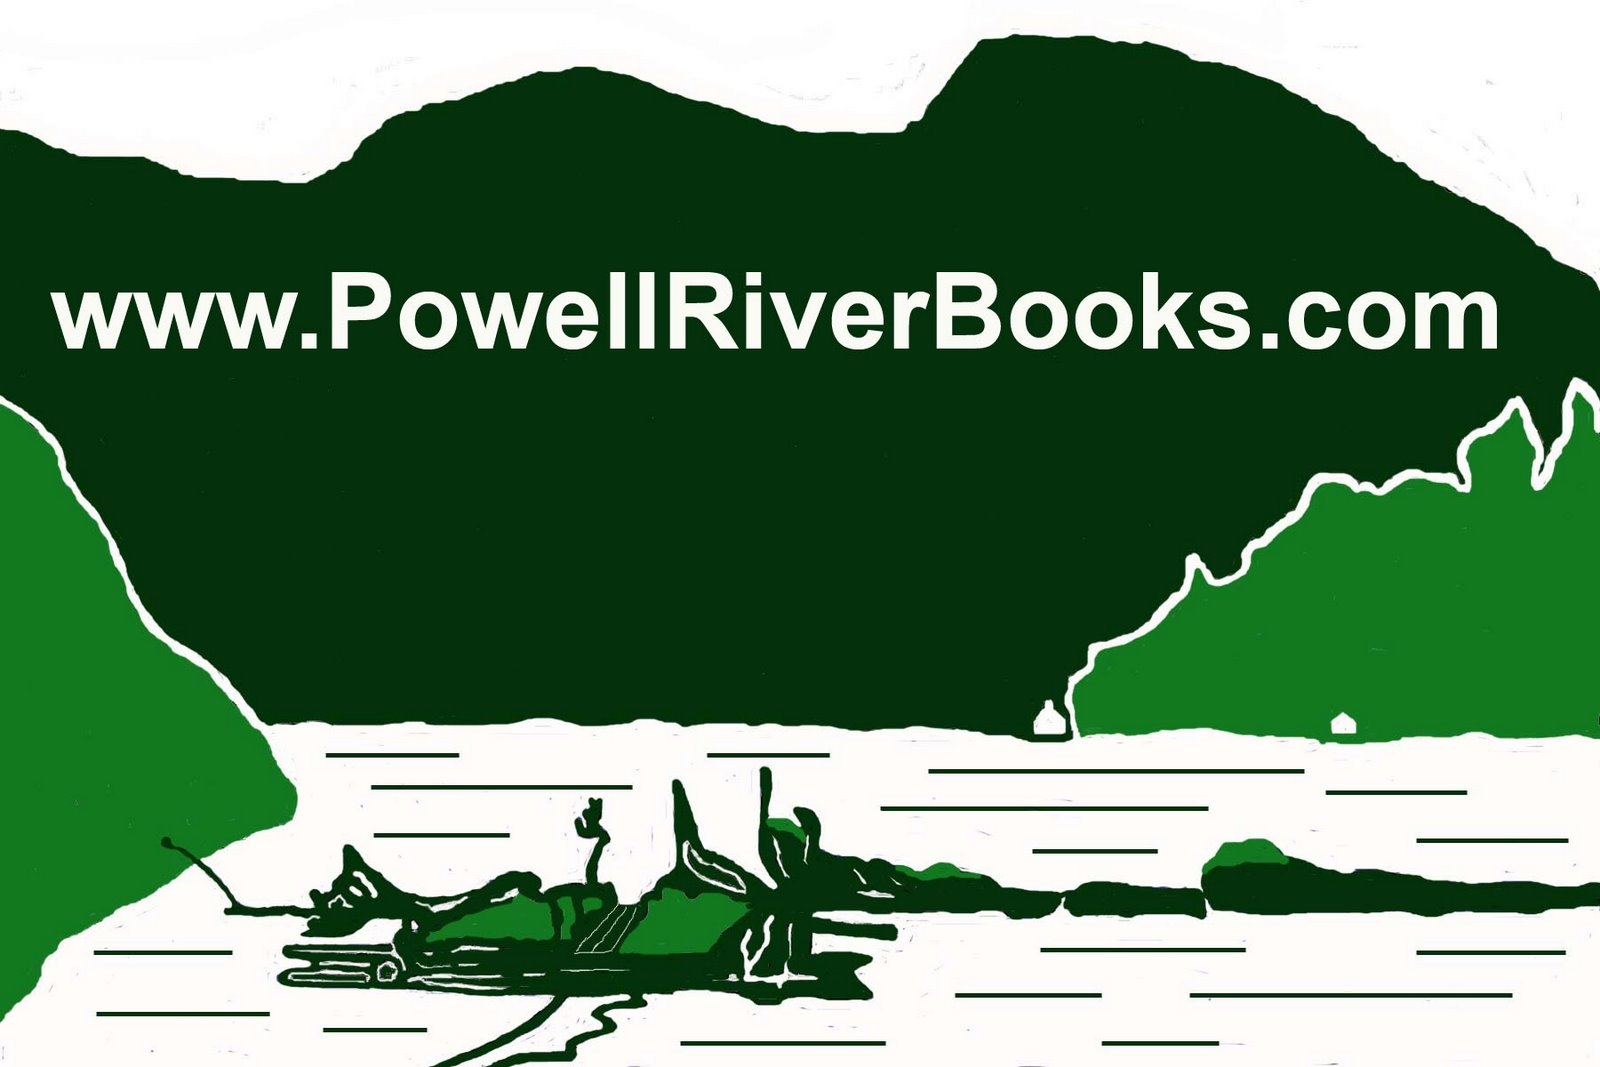 Powell River Books Blog: December 2014